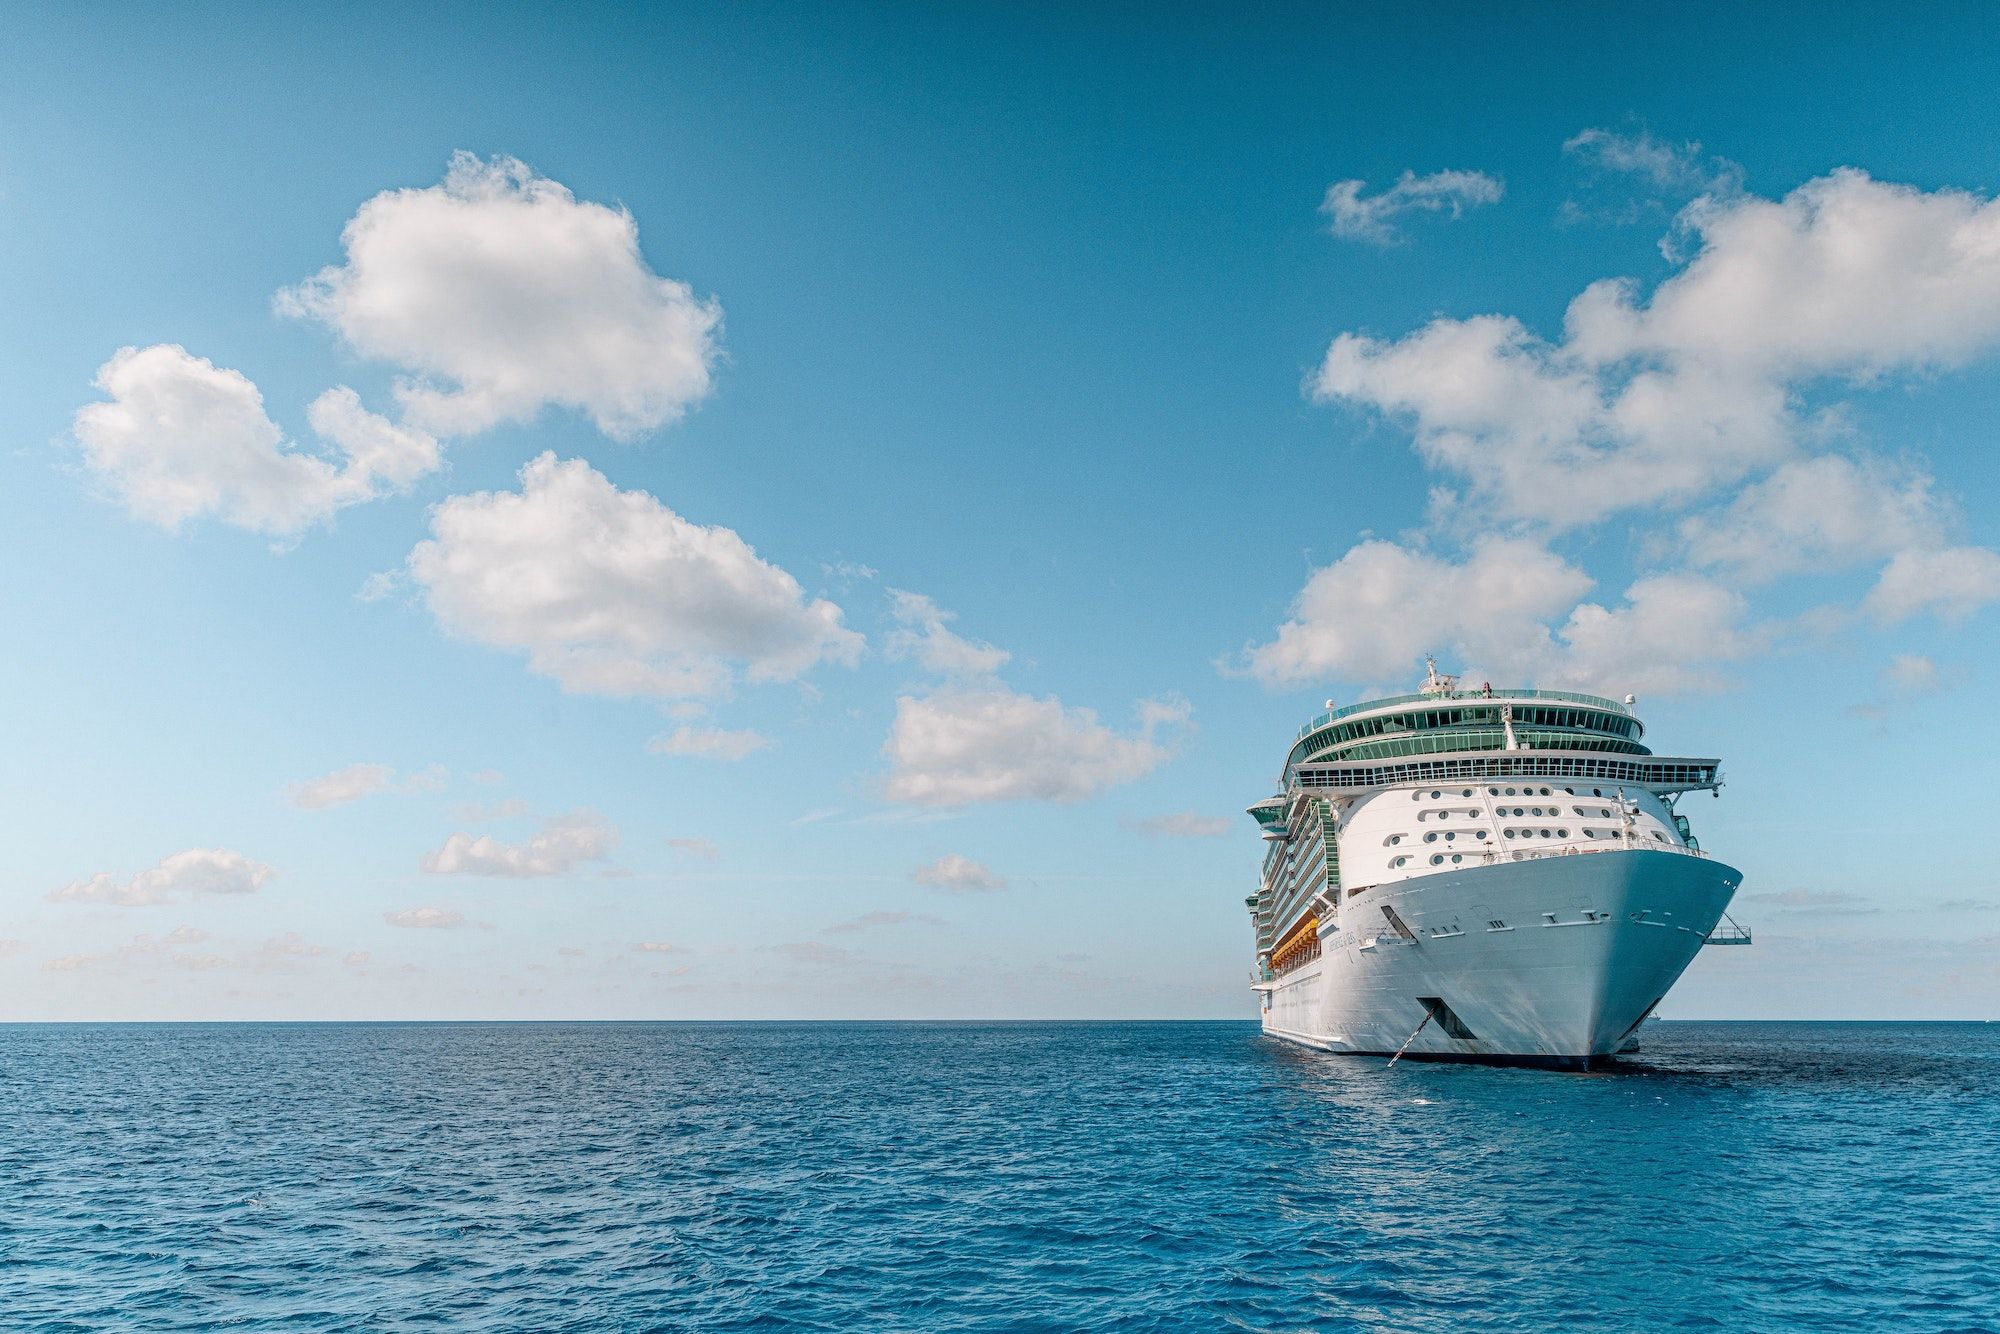 Post-Covid-19 Travel: Here's Why Cruises May Be The Safest Way To Go On Vacation